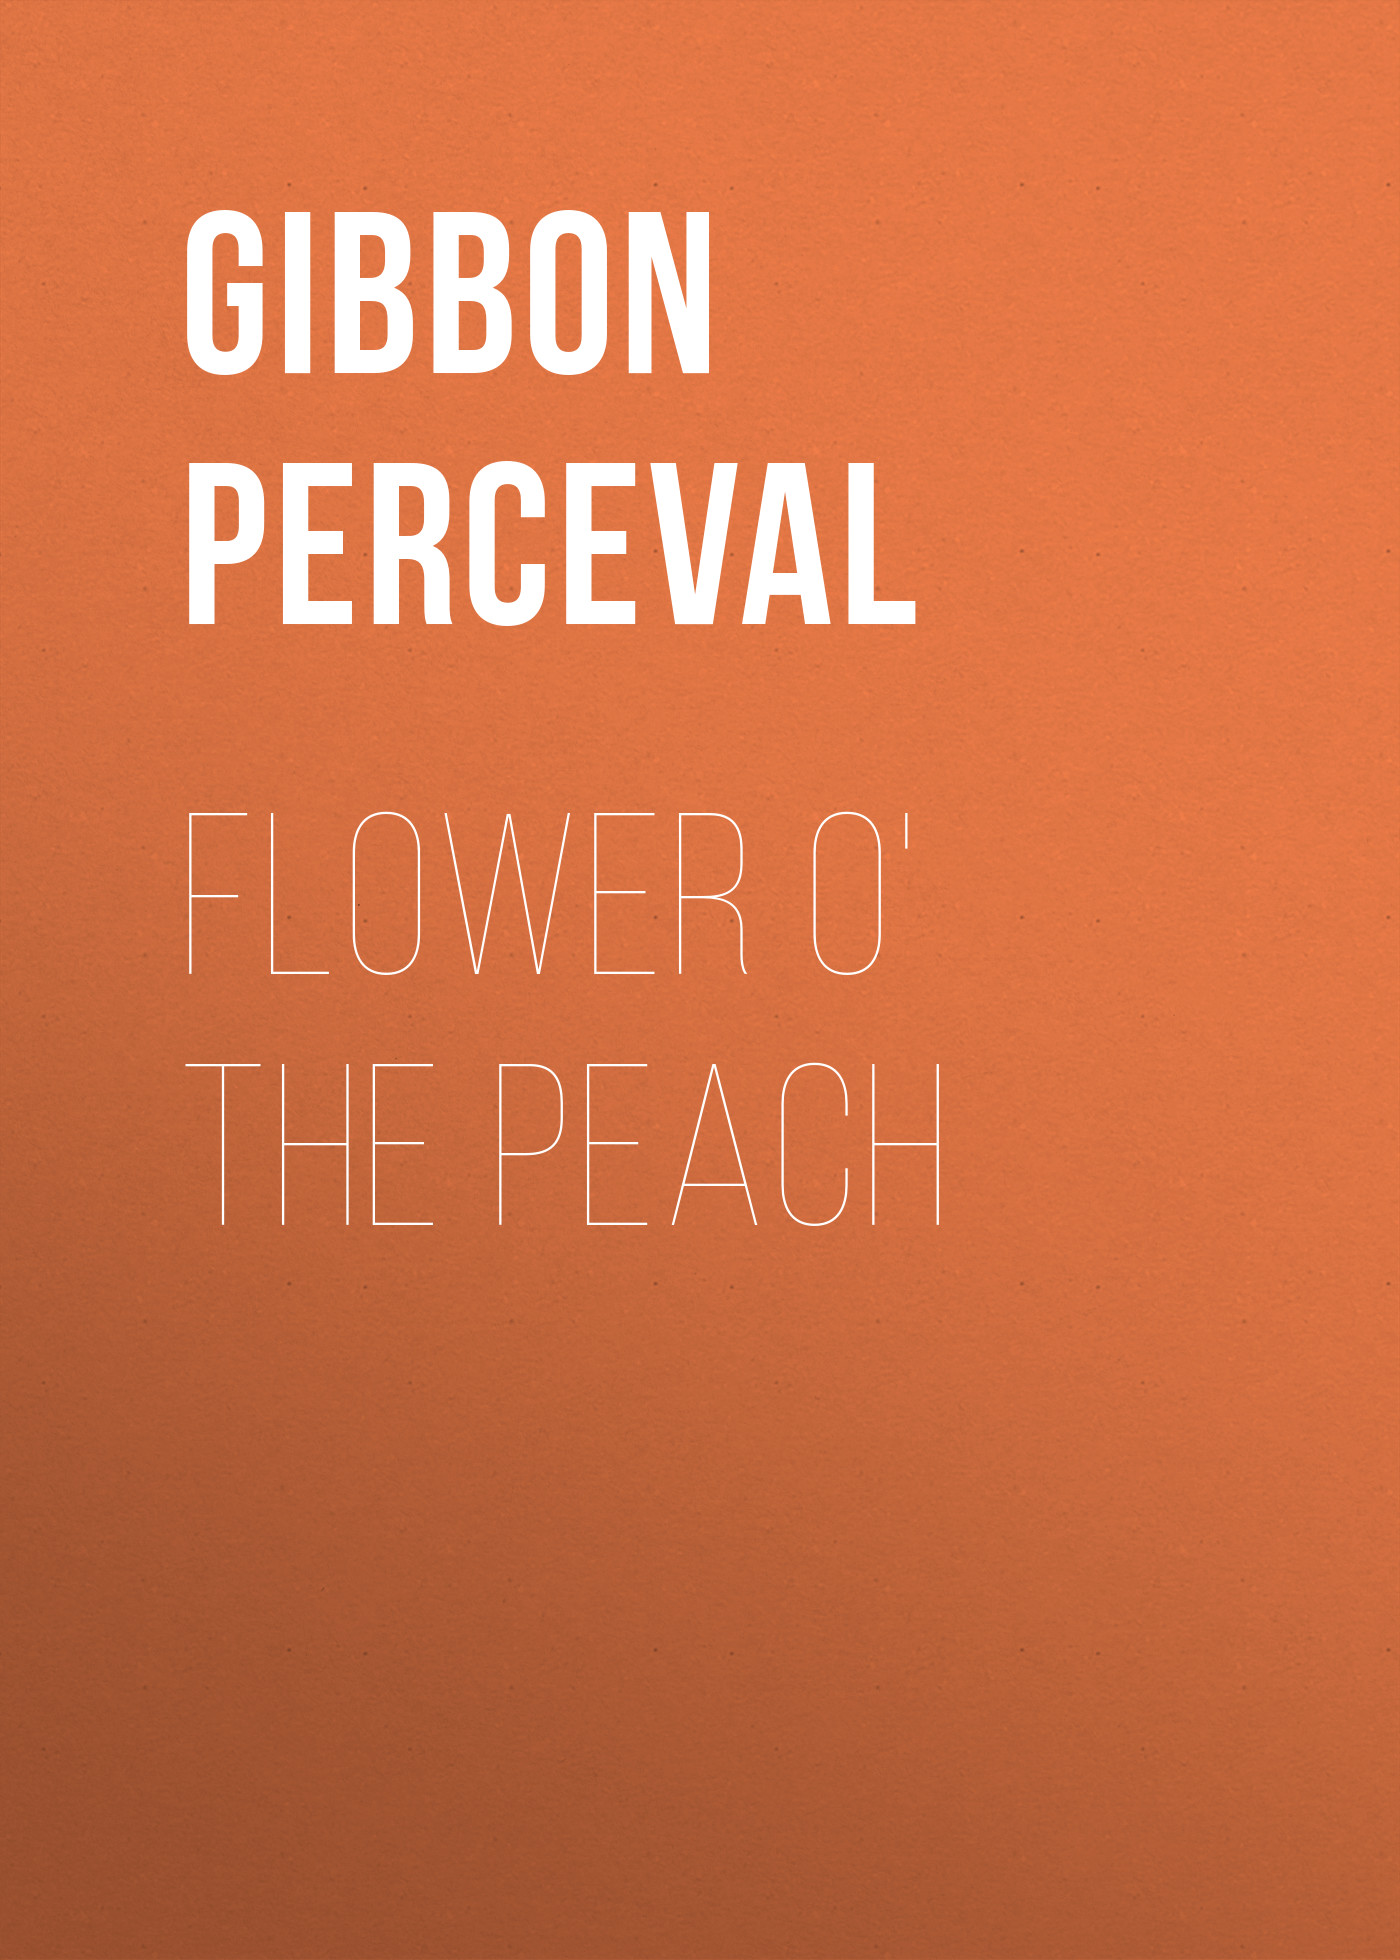 Gibbon Perceval Flower o' the Peach